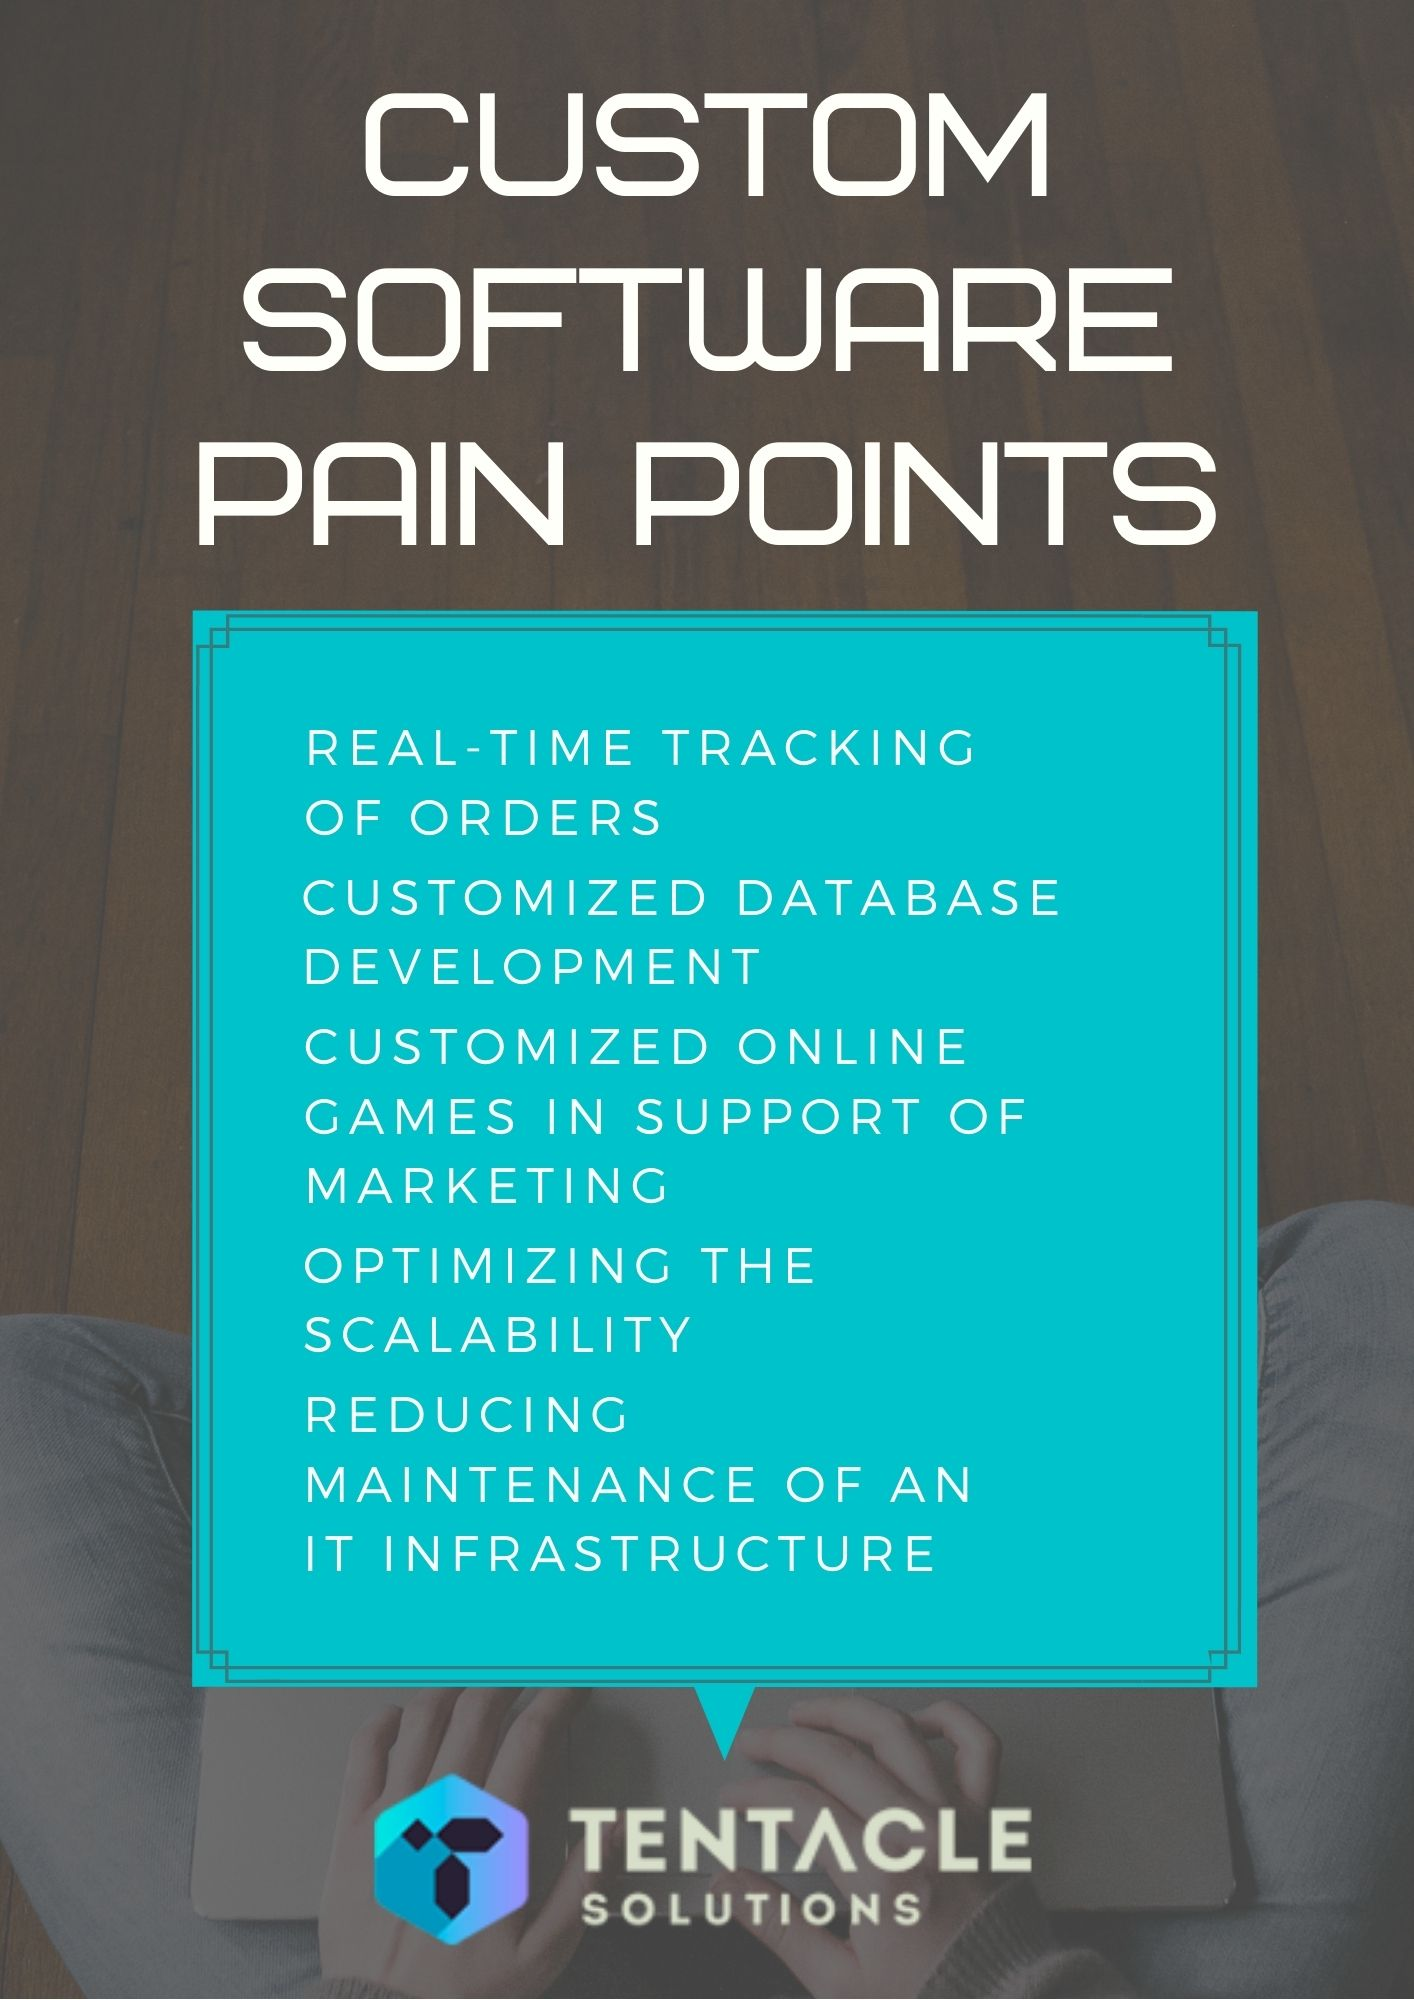 Custom software pain points